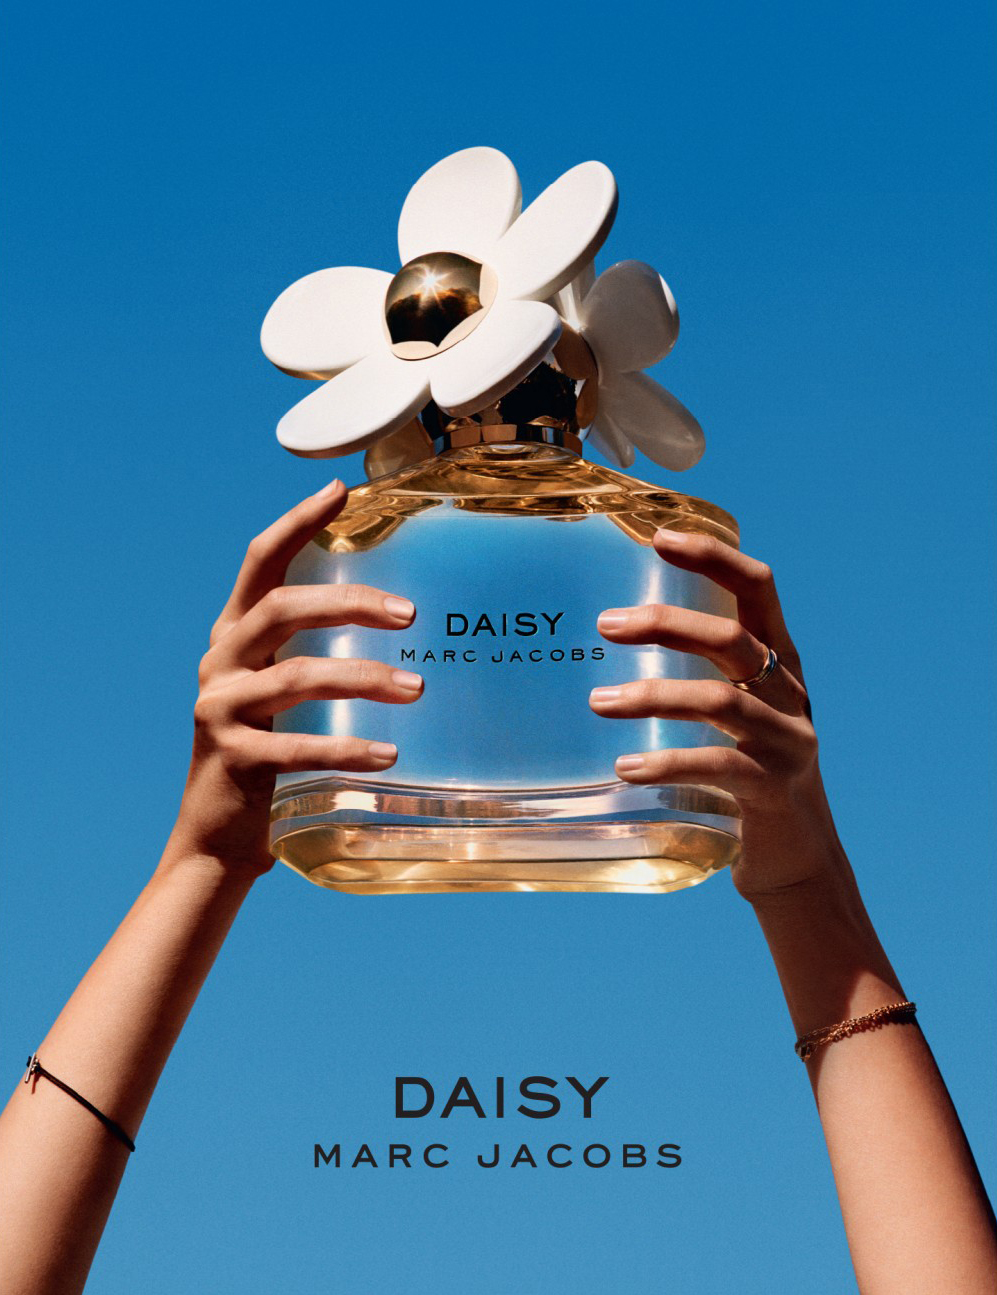 Marc-Jacobs-Daisy-Fragrance-ad-campaign-the-impression-01